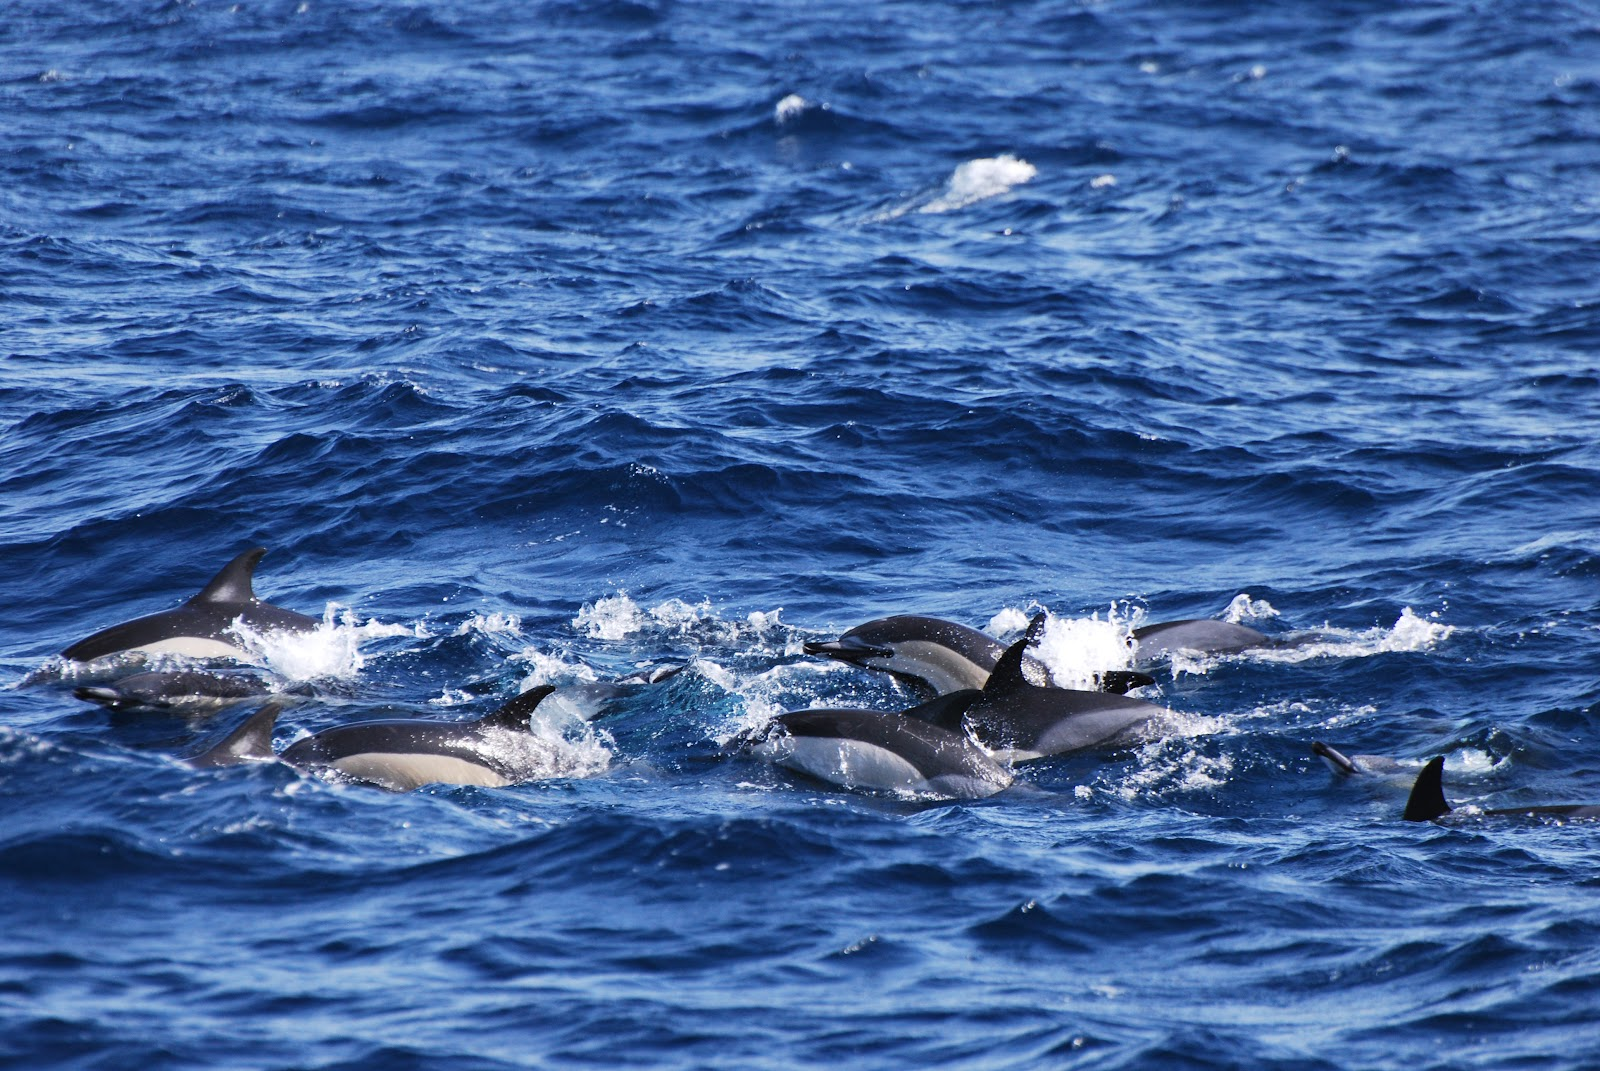 azores whale watching futurismo rough sea but lots of dolphins